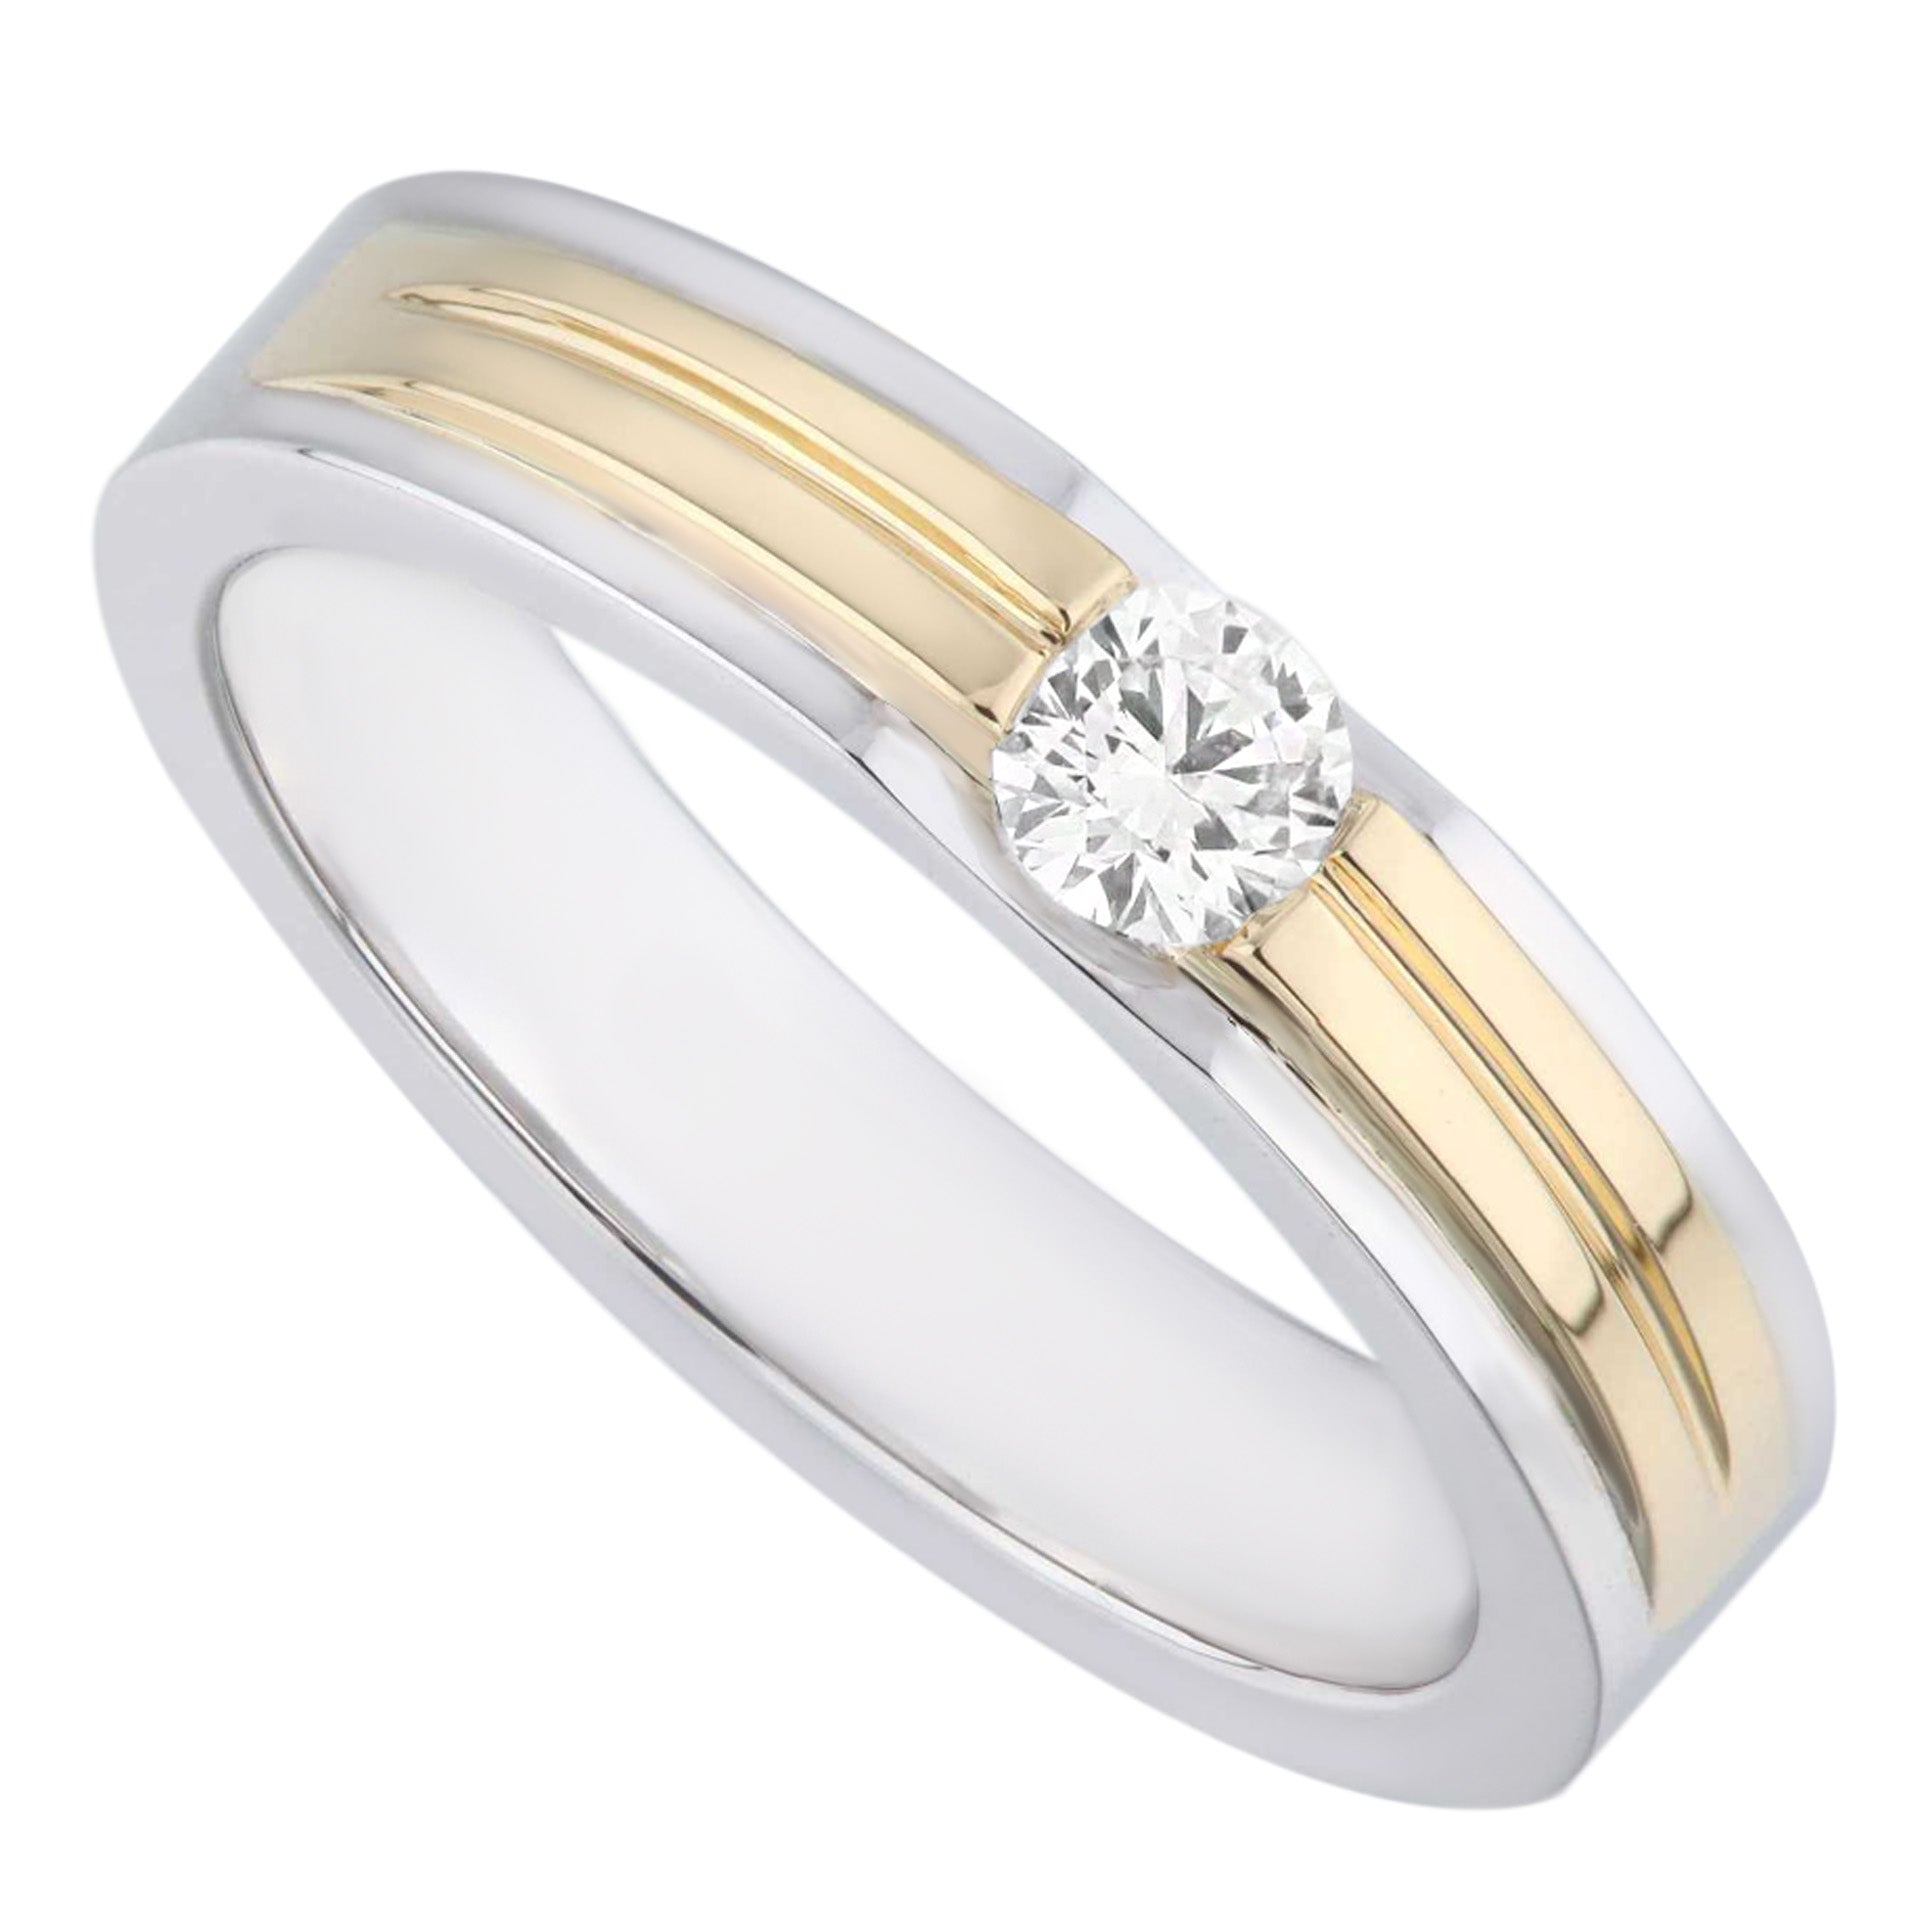 Two Tones White & Yellow Gold Modern Style Men's Diamond Ring - KARP Jewellery